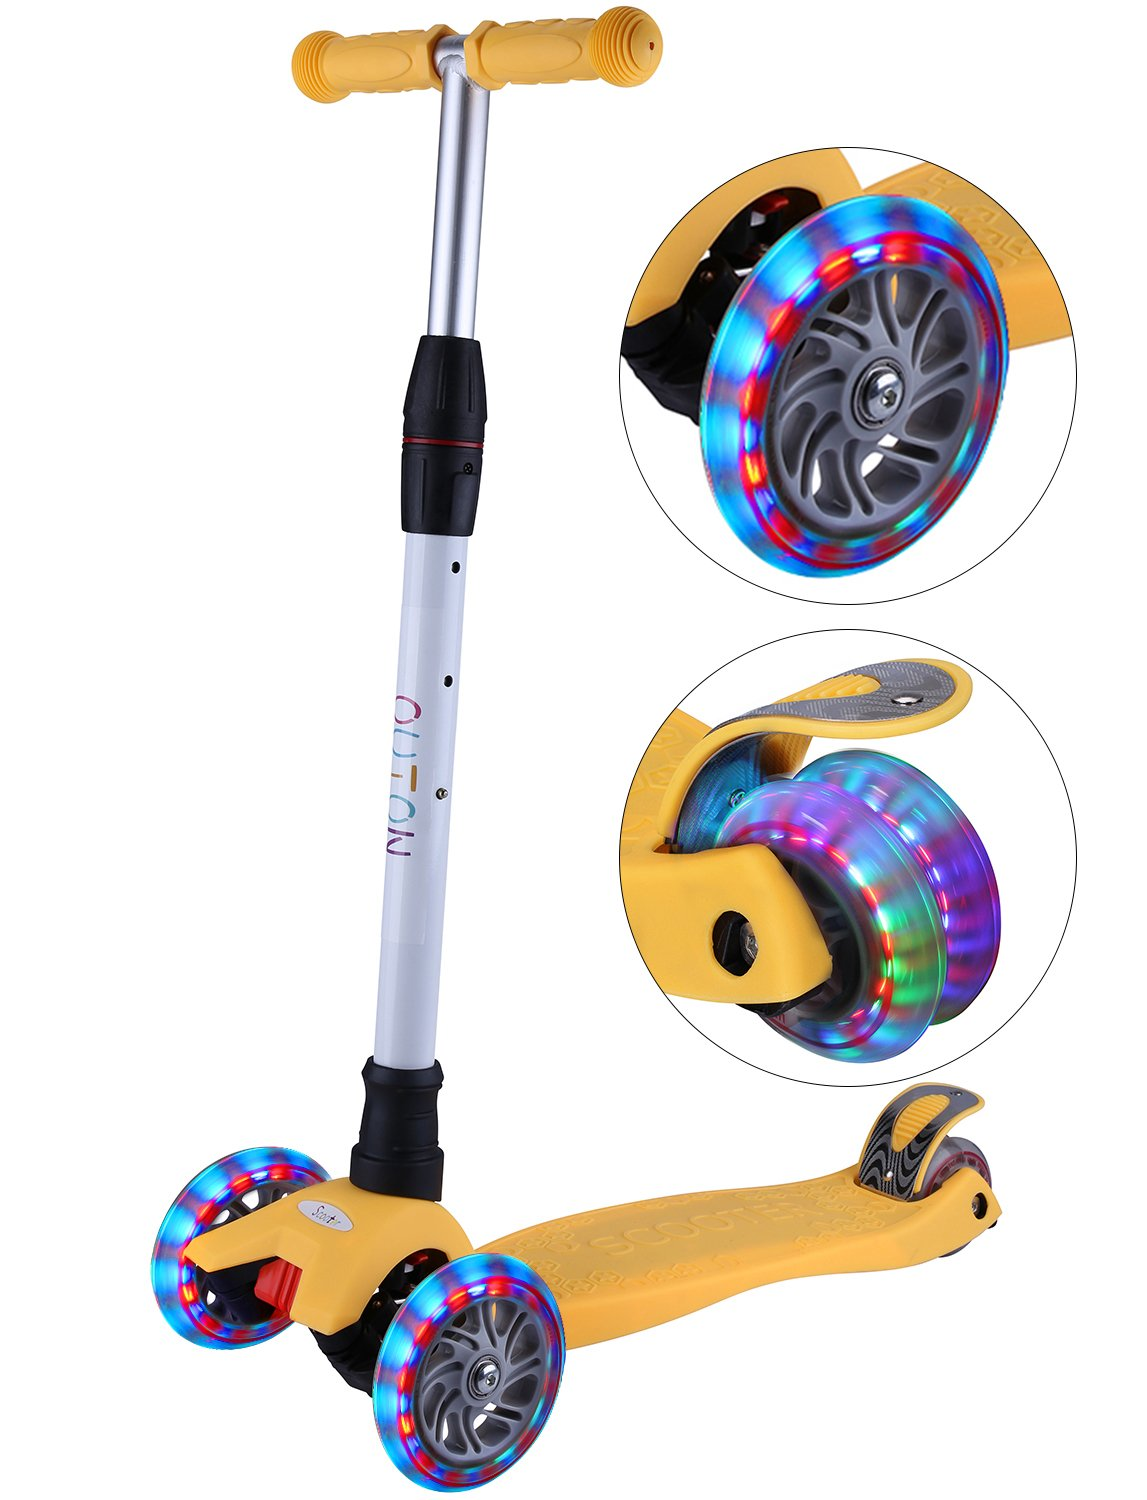 Outon Kick Scooter For Kids 3 Wheel Lean To Steer Adjustable Height PU ABEC-7 Flasing Wheels Yellow